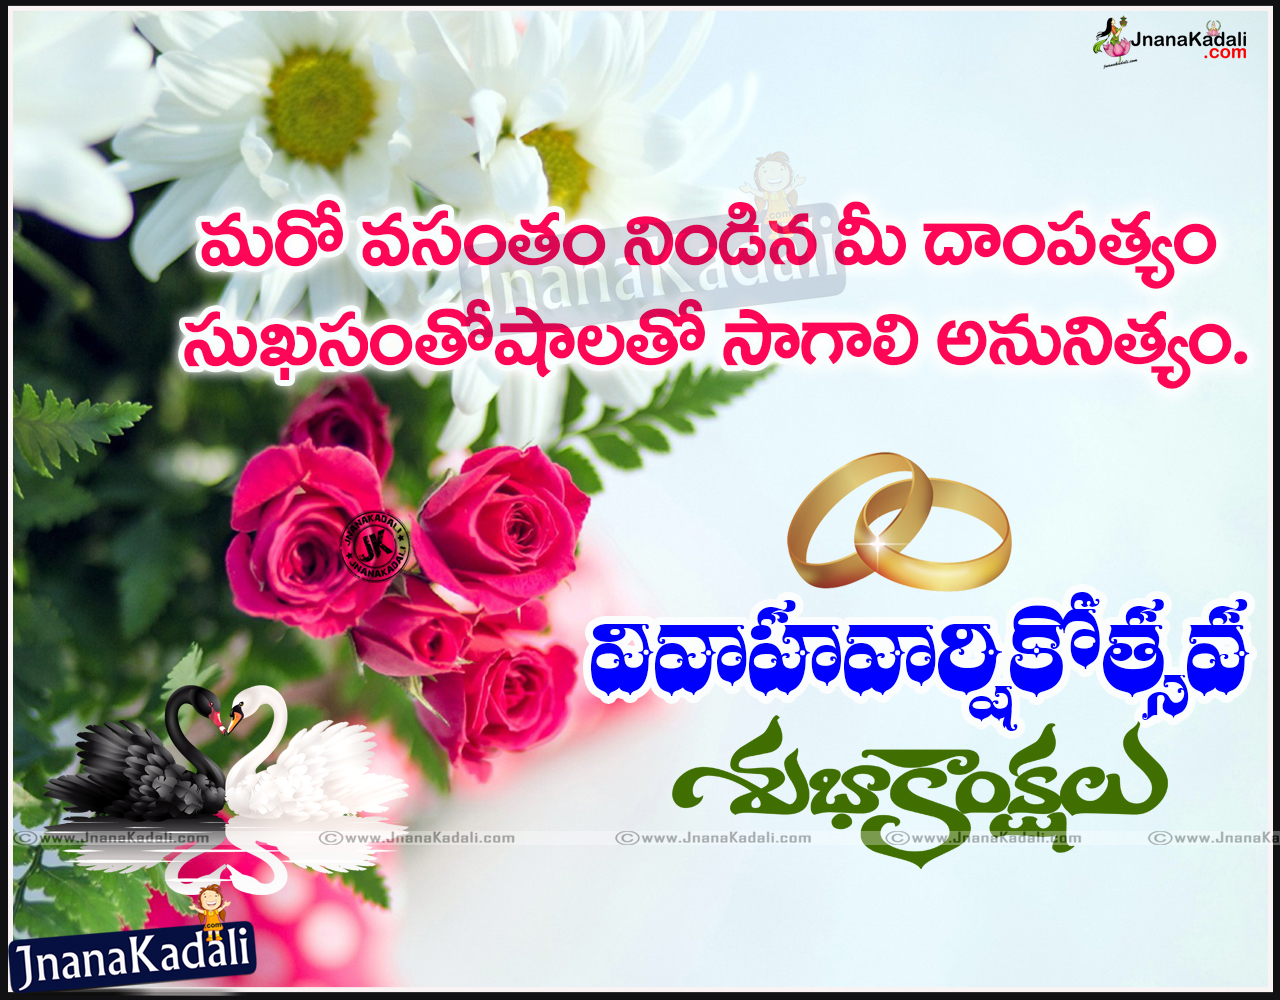 Quotations for sister marriage